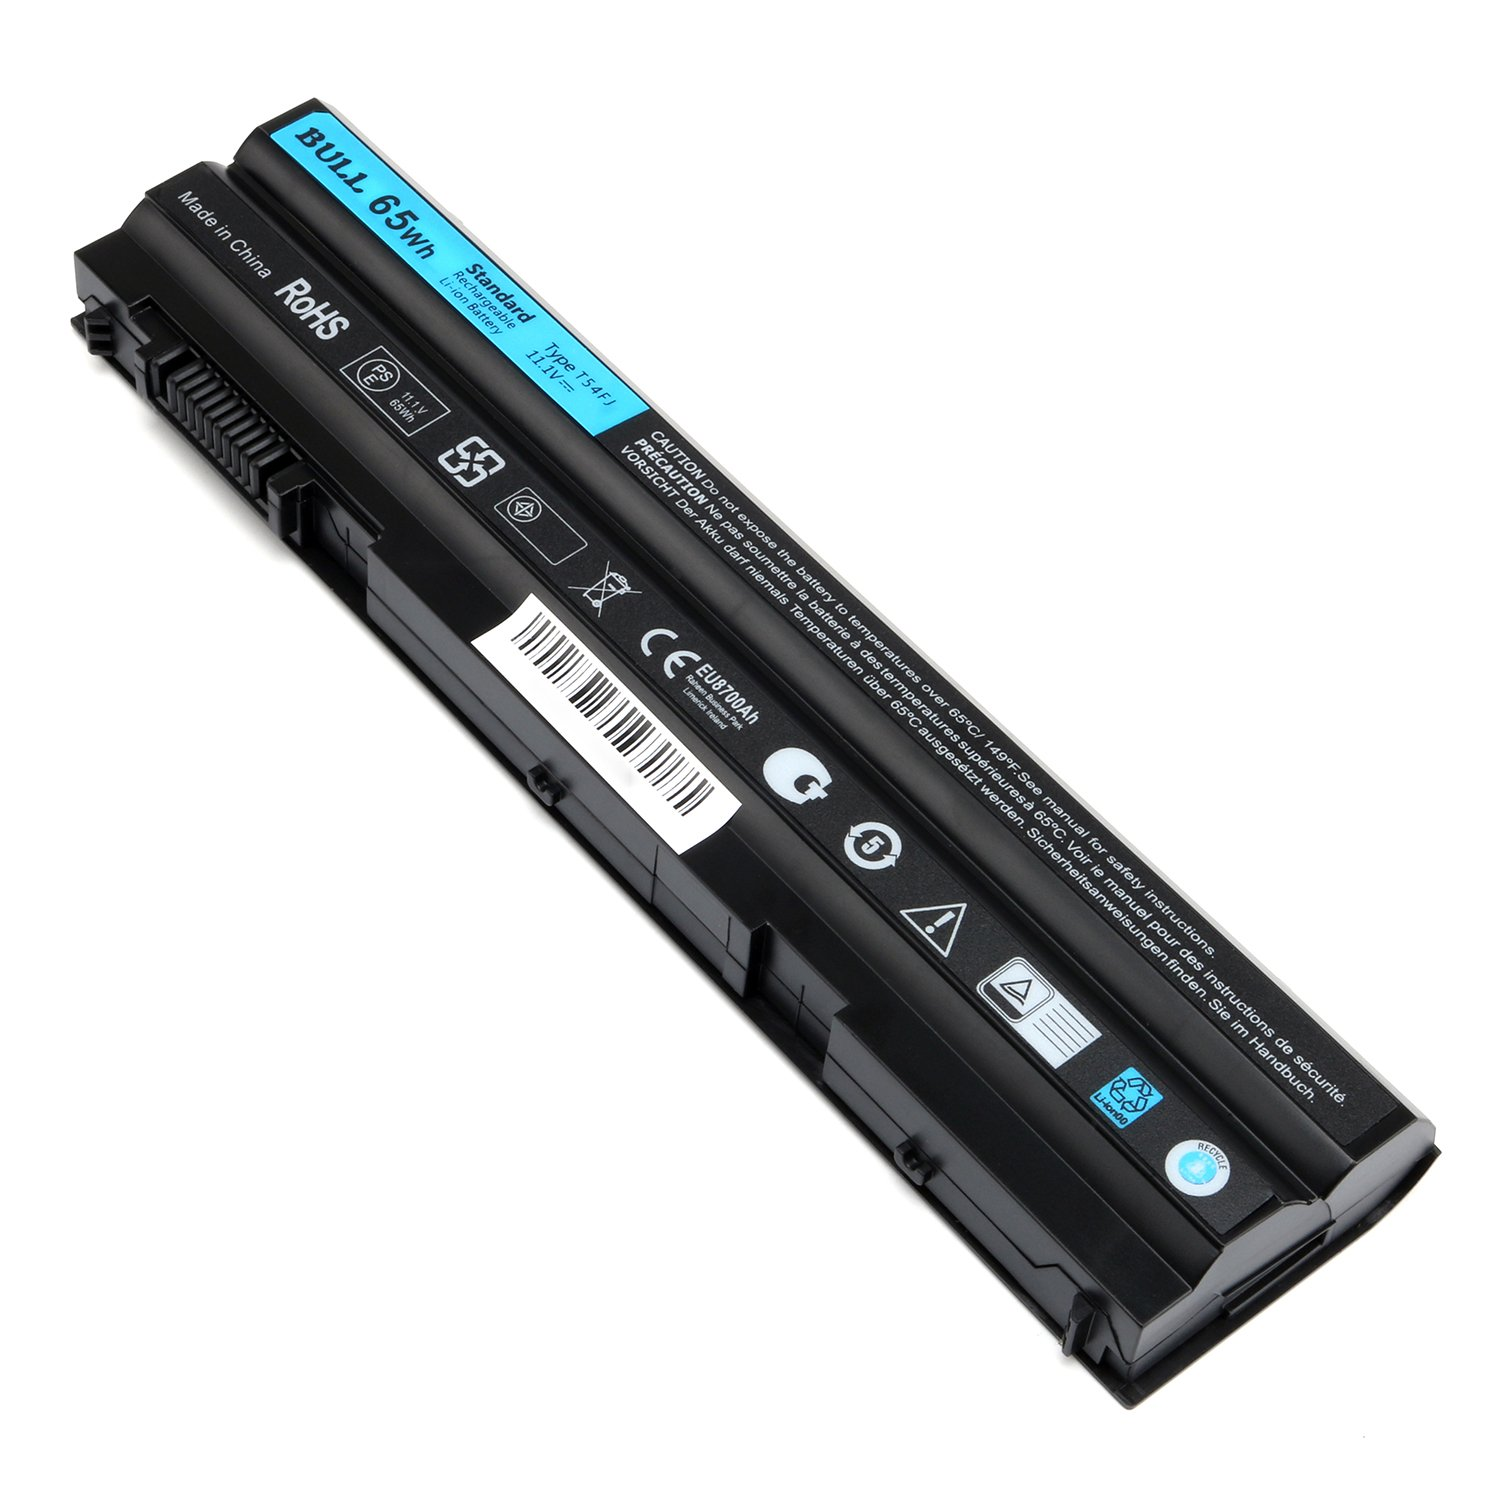 BULL-TECH 11.1V T54FJ New Laptop Battery for Dell Latitude E5420 E5520 E6420 E6520 Compatible P/N: M5Y0X 312-1163 HCJWT 7FJ92 by BULL-TECH (Image #6)